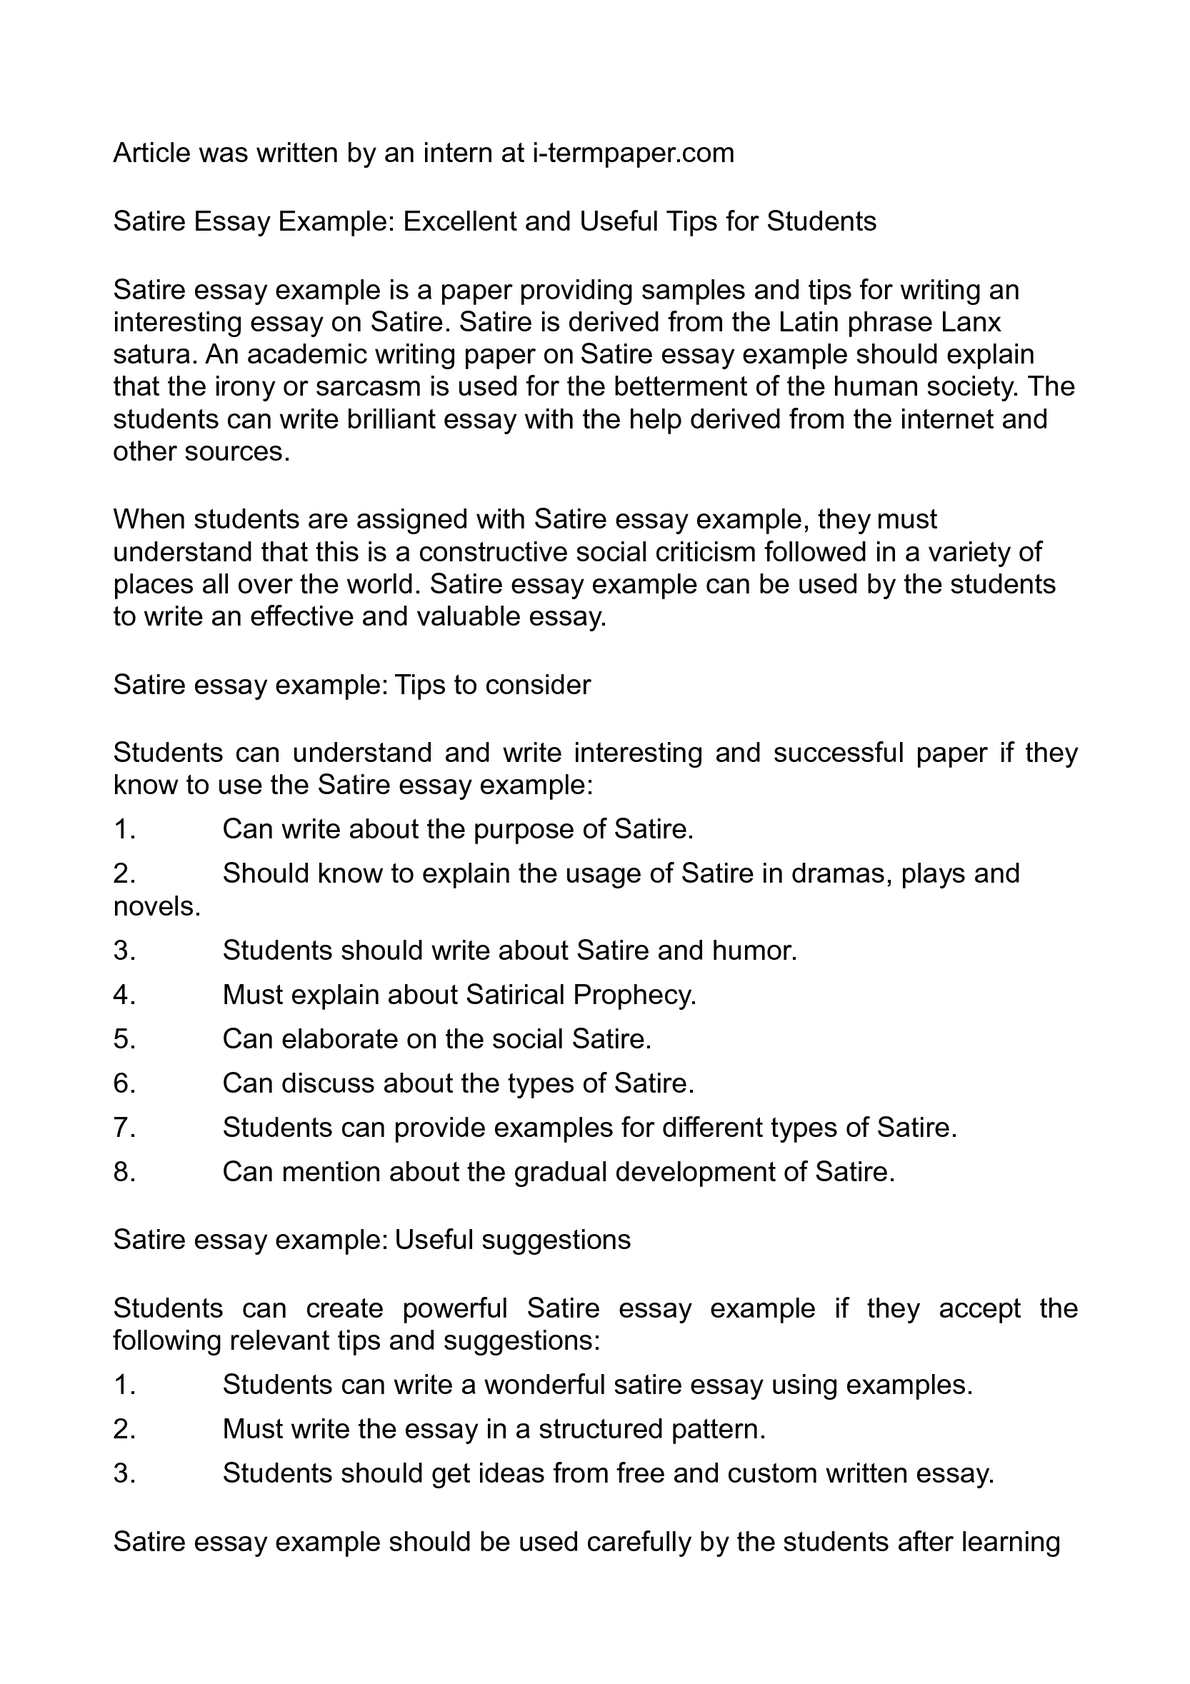 modest proposal essay ideas proposal essay topicproposal essay hh thumb hh thumb college essays satire essay ideas example is is characteristics of neoclassicism in a modest proposal